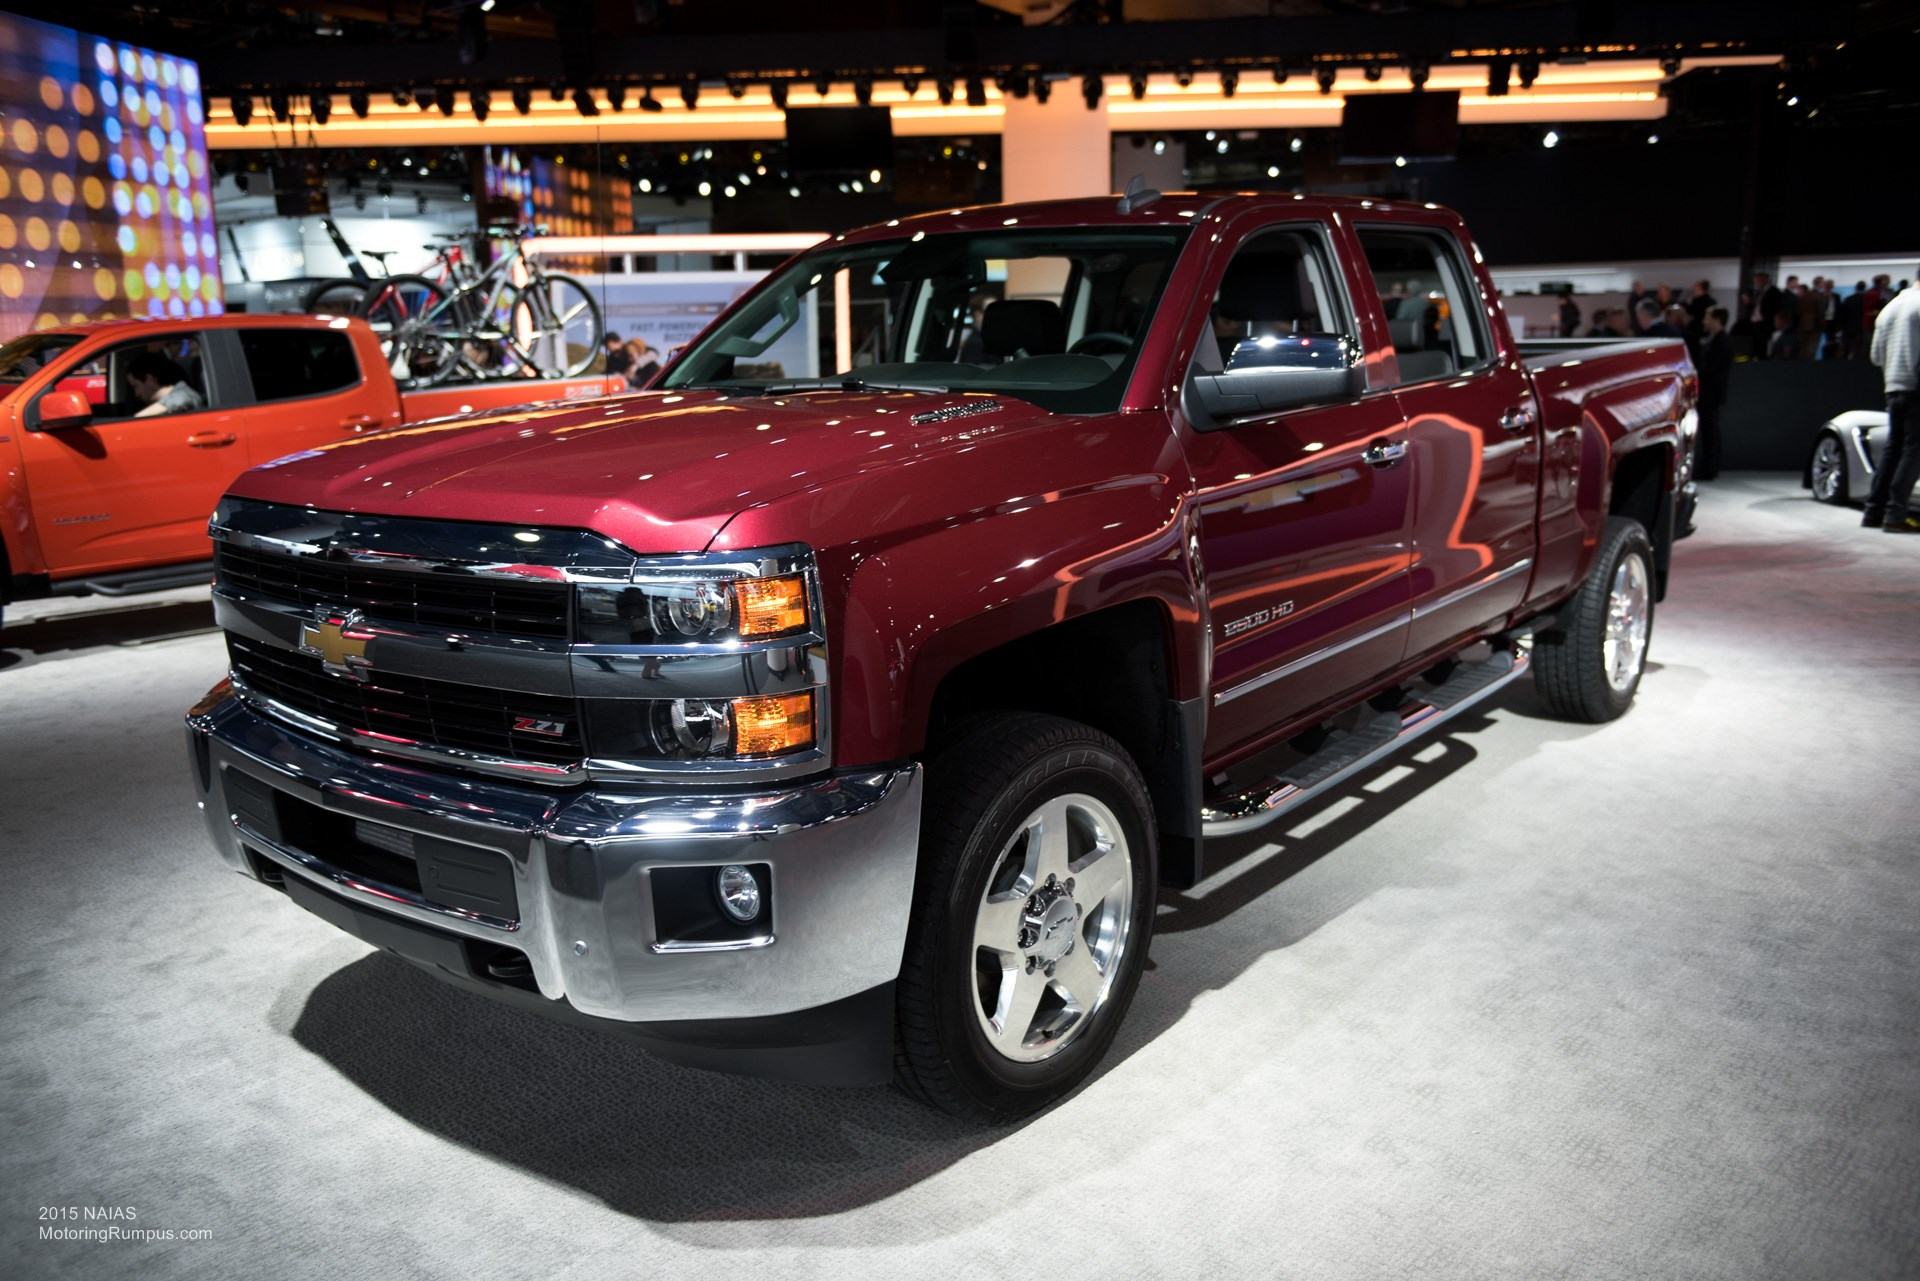 2015 NAIAS Chevy Silverado 2500HD LTZ